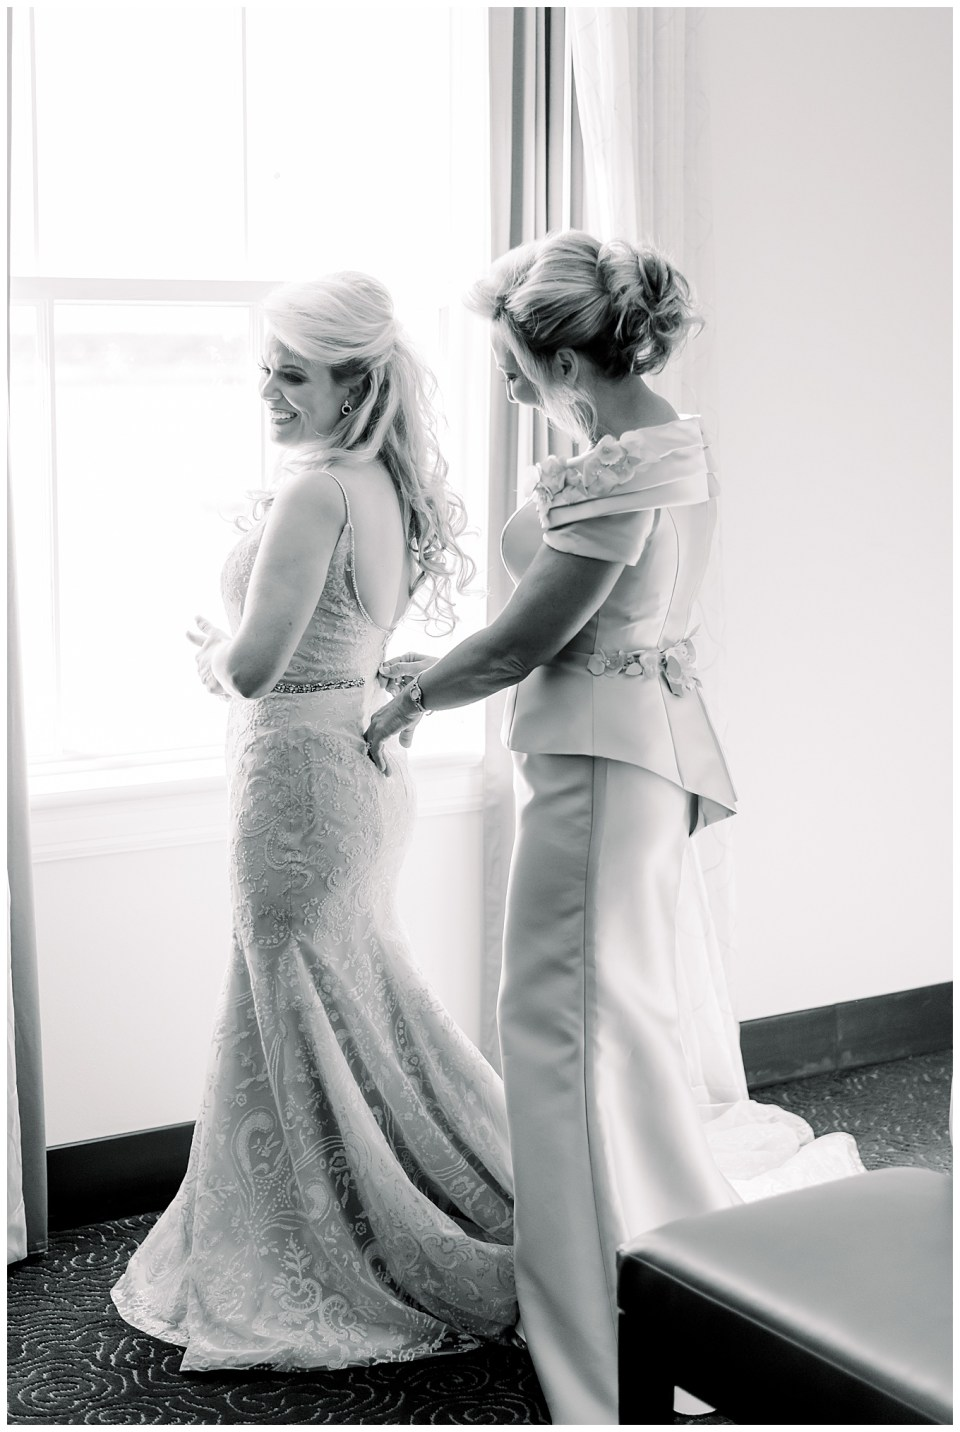 mom and bride getting ready on wedding day